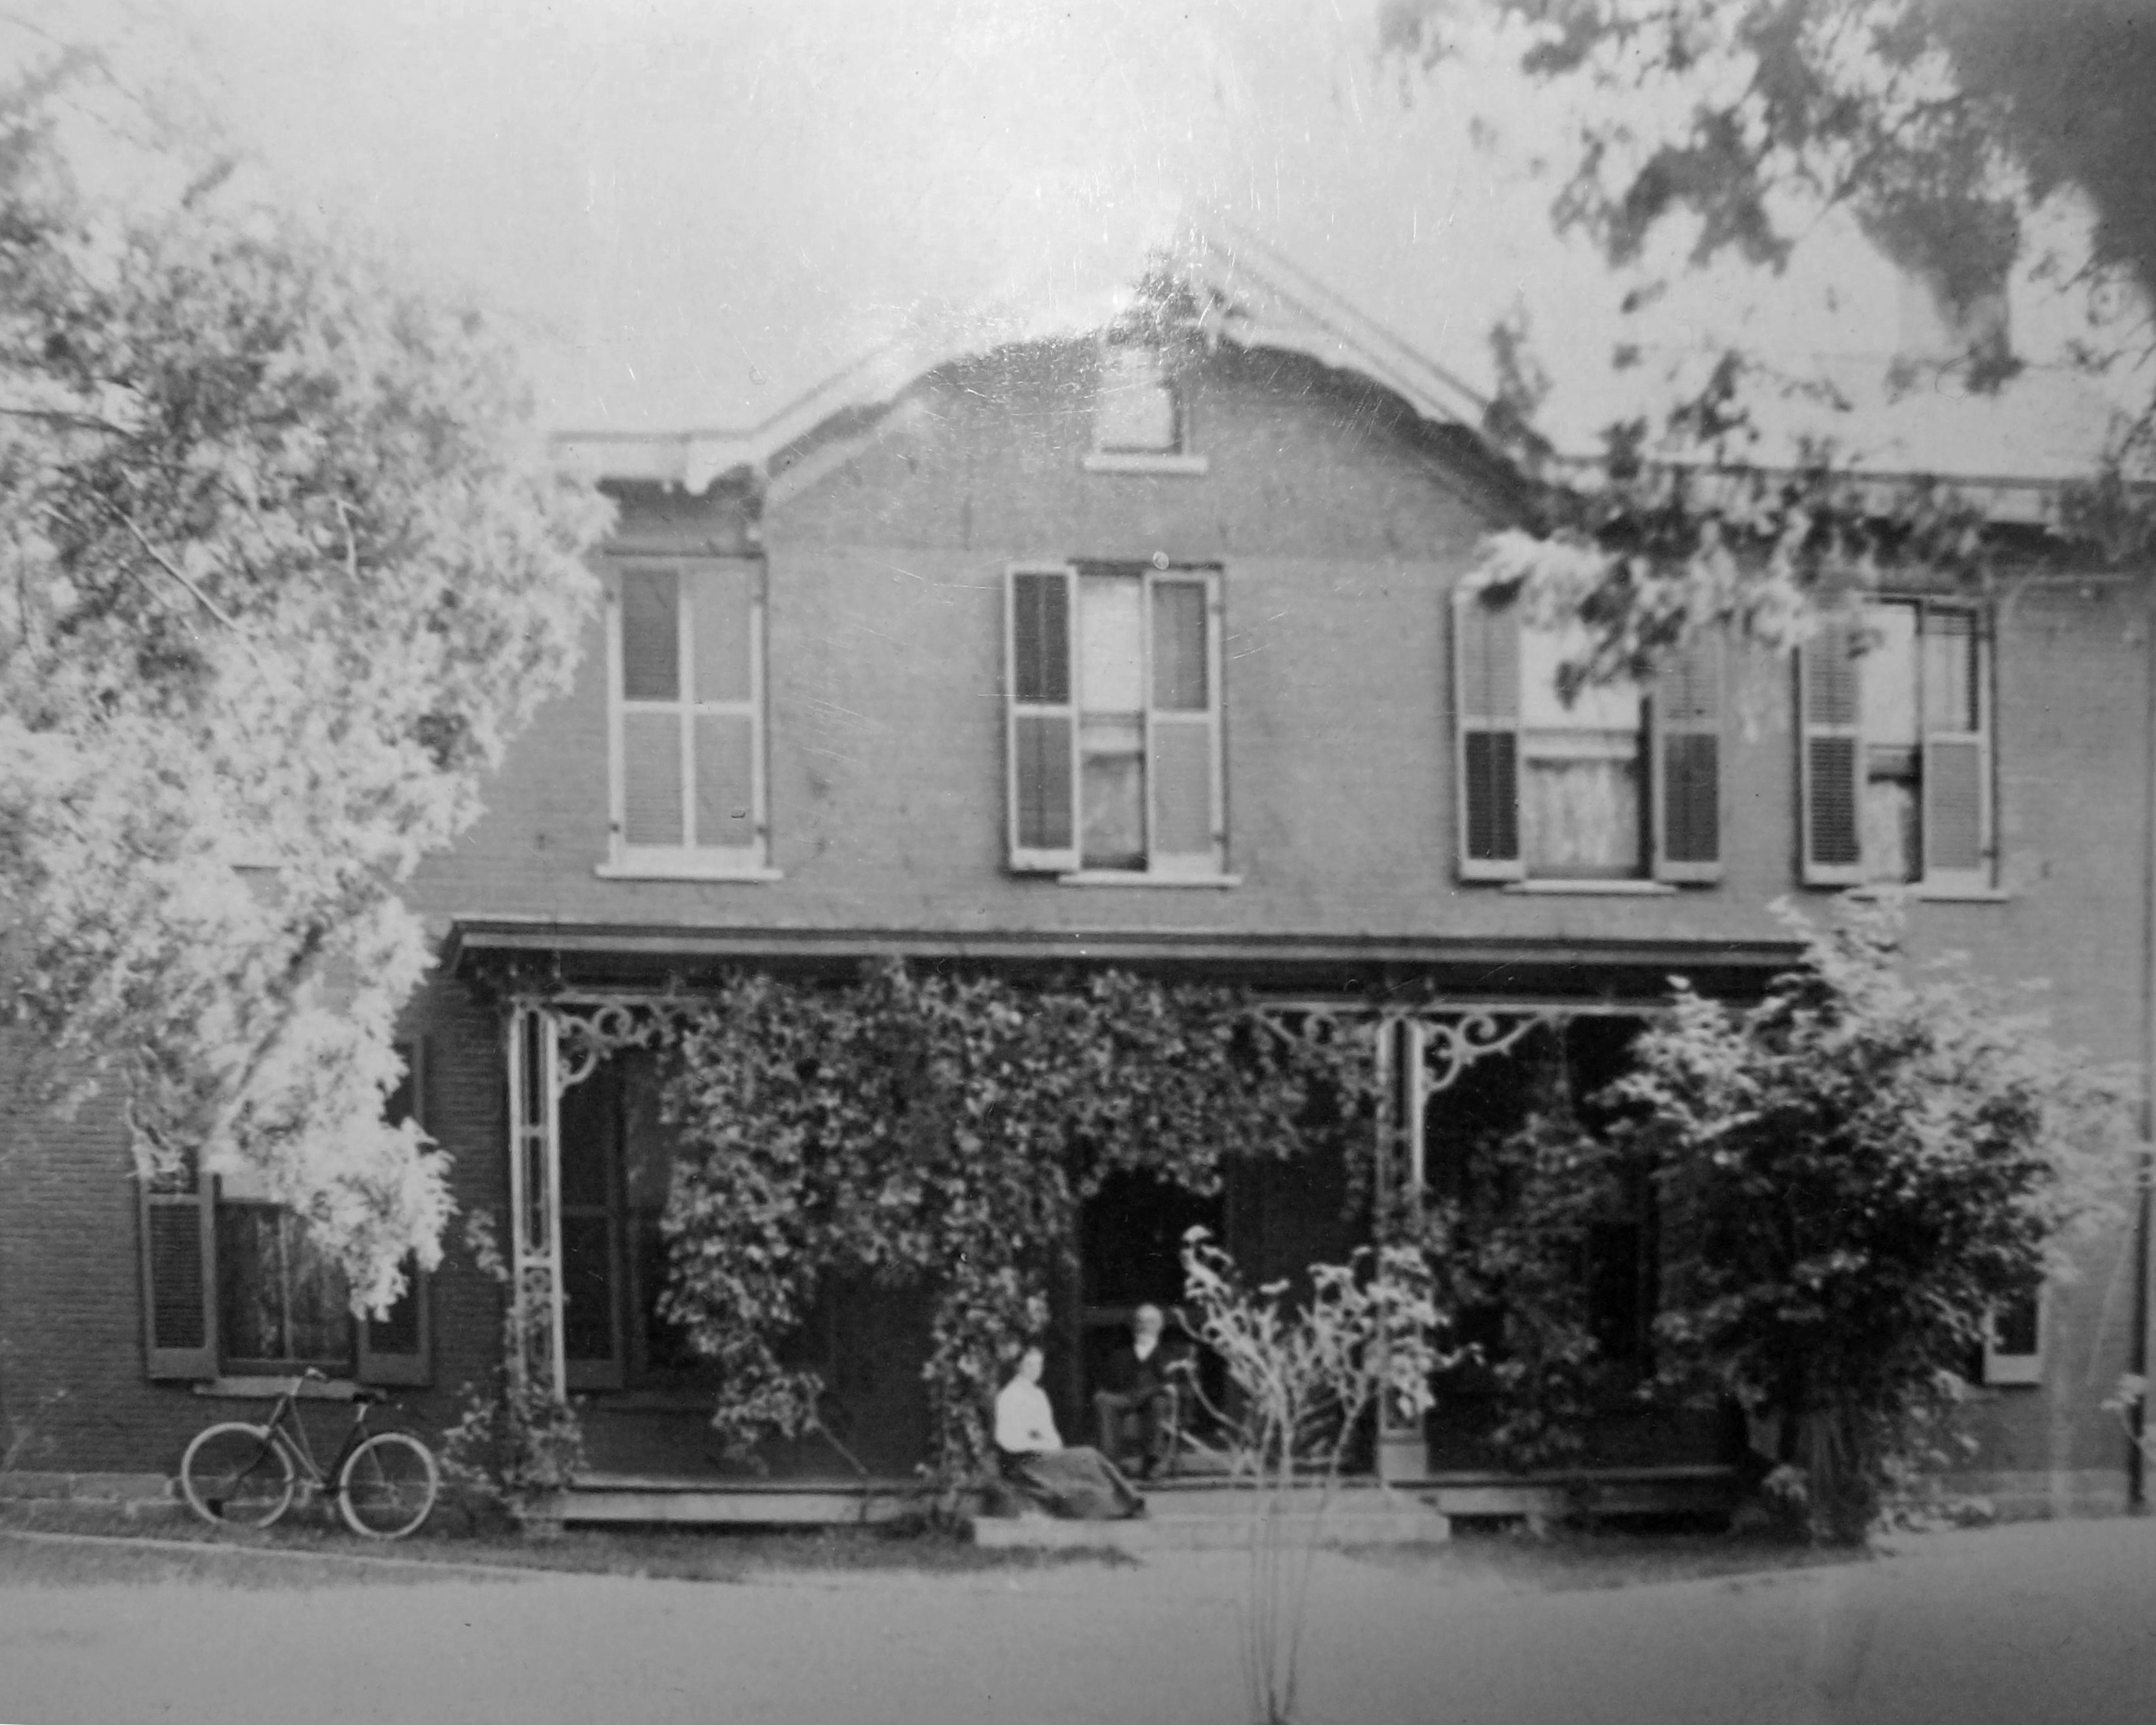 Lathrop-Shannon House